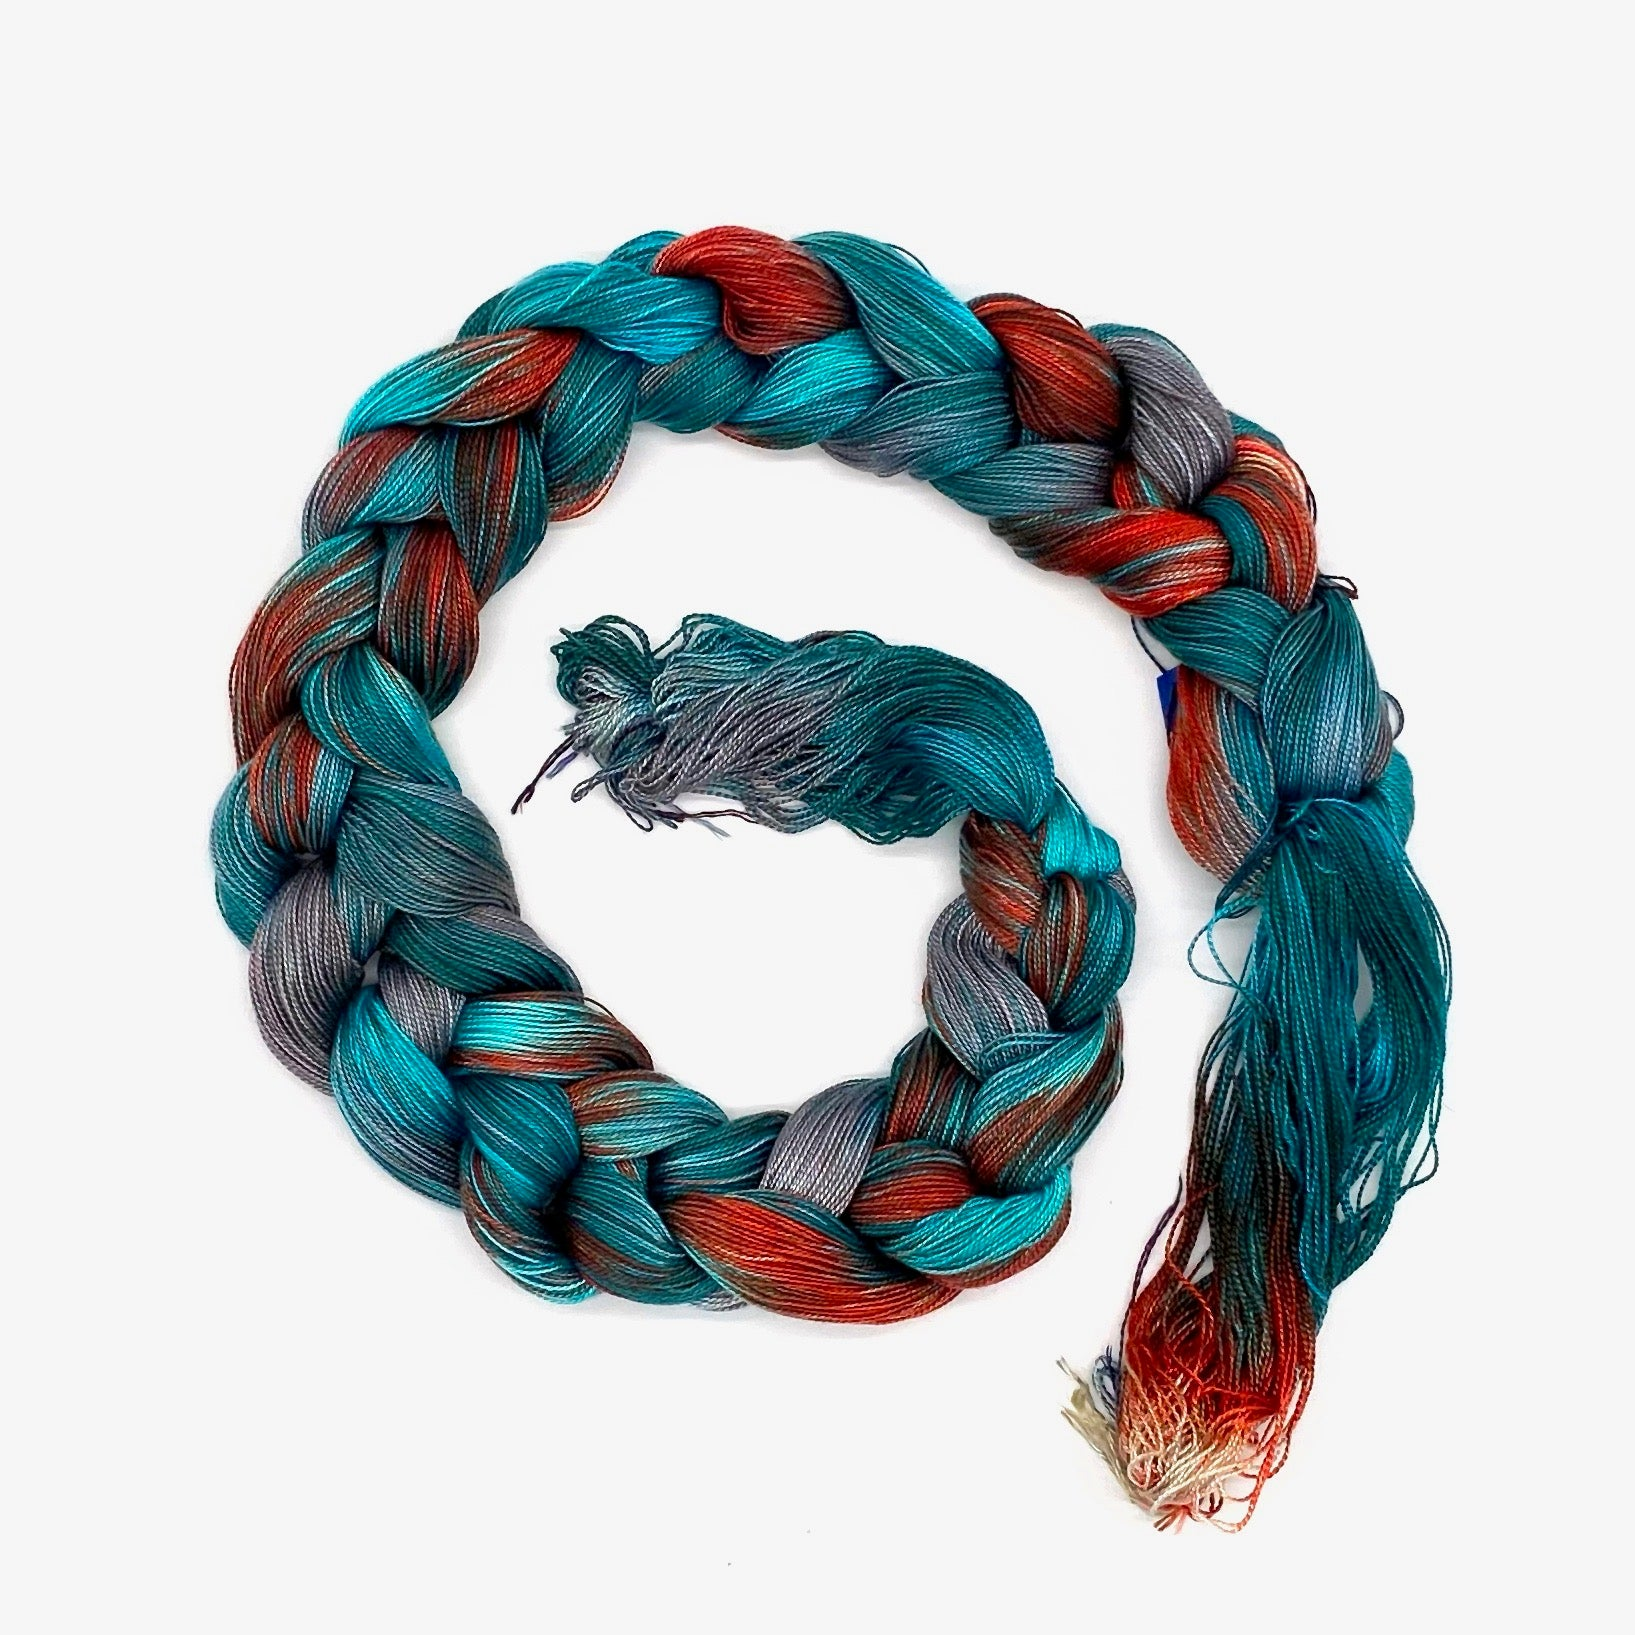 Hand Painted Warp: Tencel 5/2- Sacred Kingfisher - Sydney Sogol, Hand dyed Yarn, hand-painted-warp-5-2-sacred-kingfisher, Eco-friendly Yarn, Hand dyed warp, handpainted warp, tencel Warp, ten